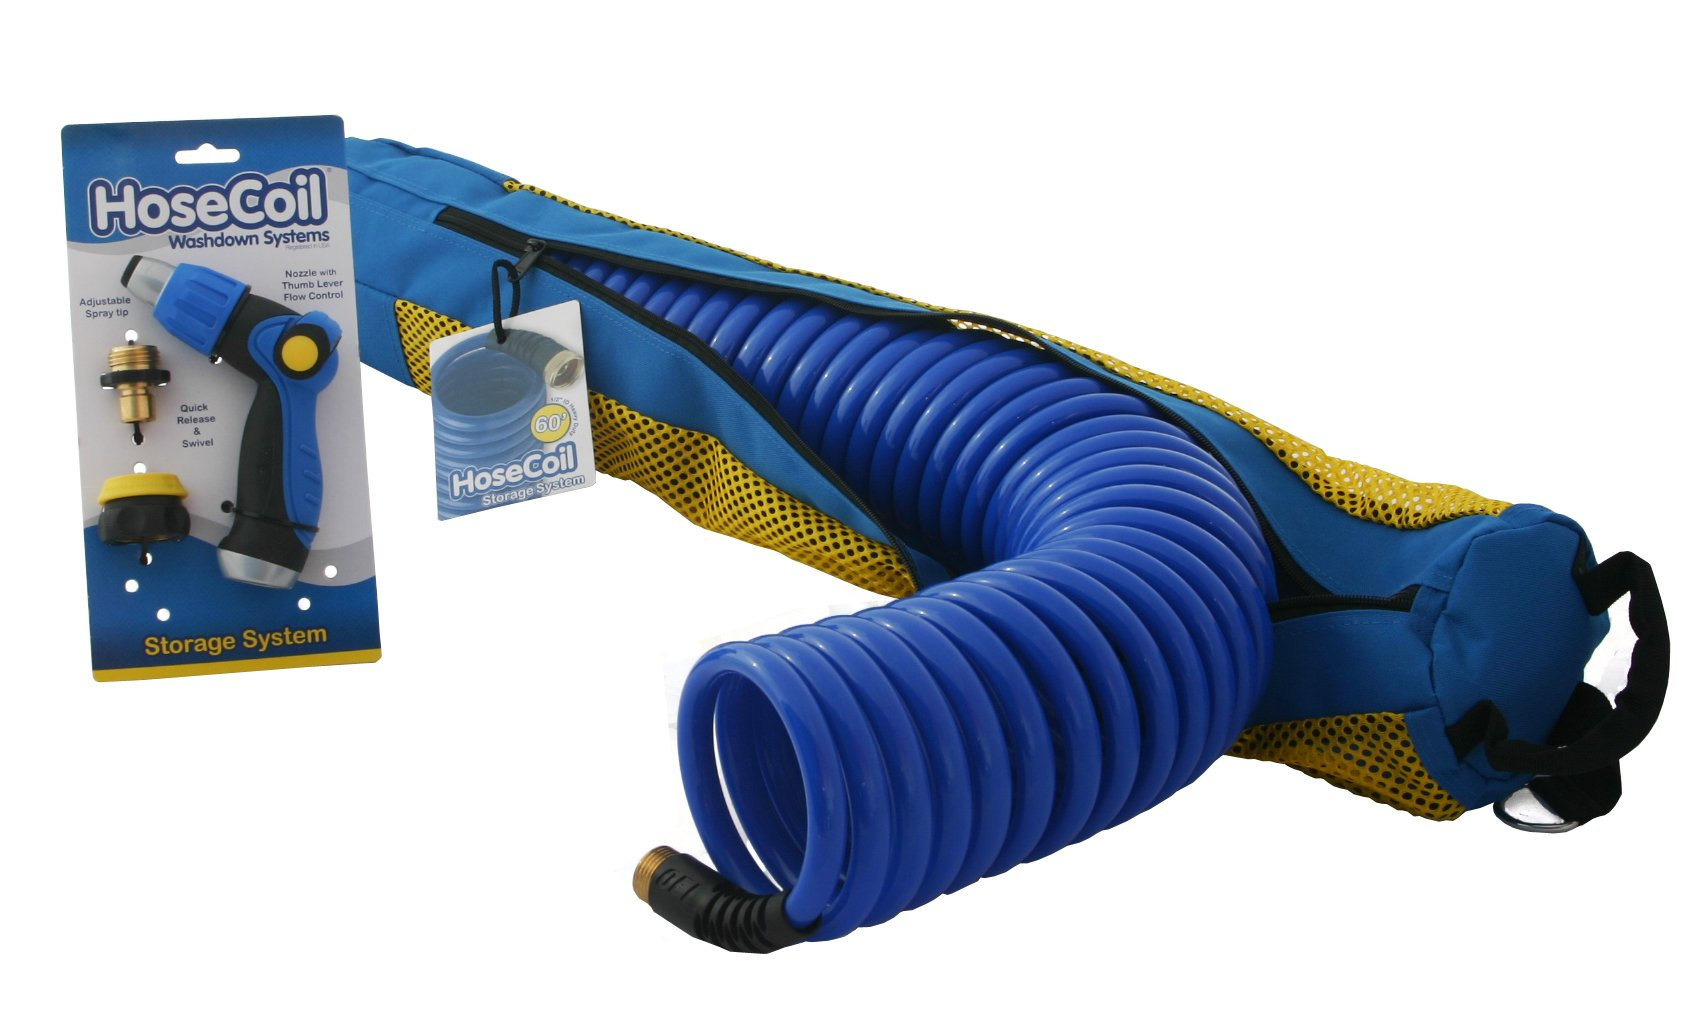 HoseCoil 60' High Performance RV, Boat and Garden Hose with Storage System and Quick Release WN810U Hose Nozzle